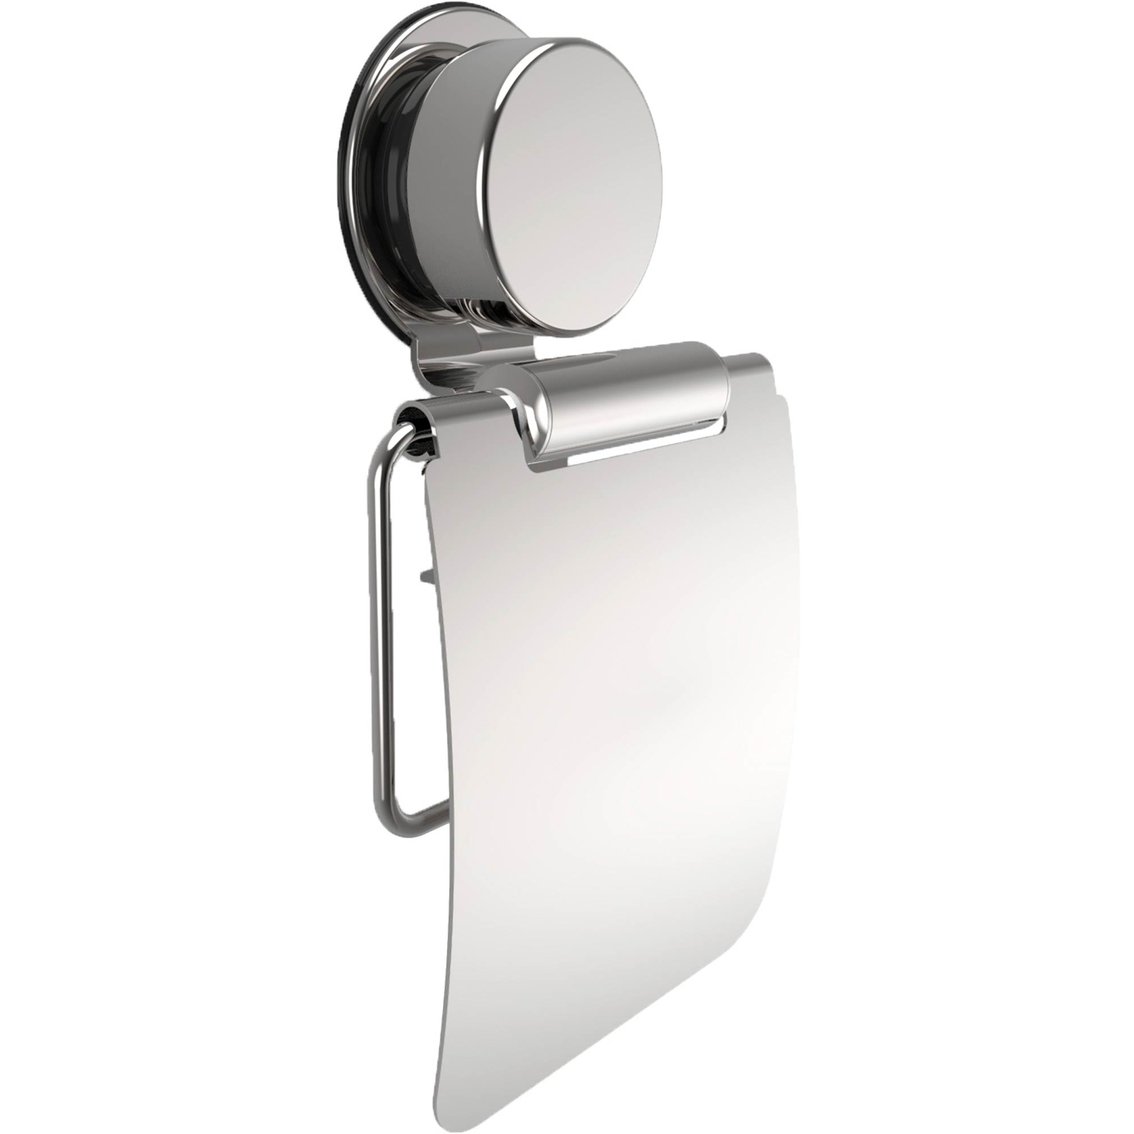 Lavish Home Wall Mount Toilet Paper Holder With Flap | Tub & Shower ...